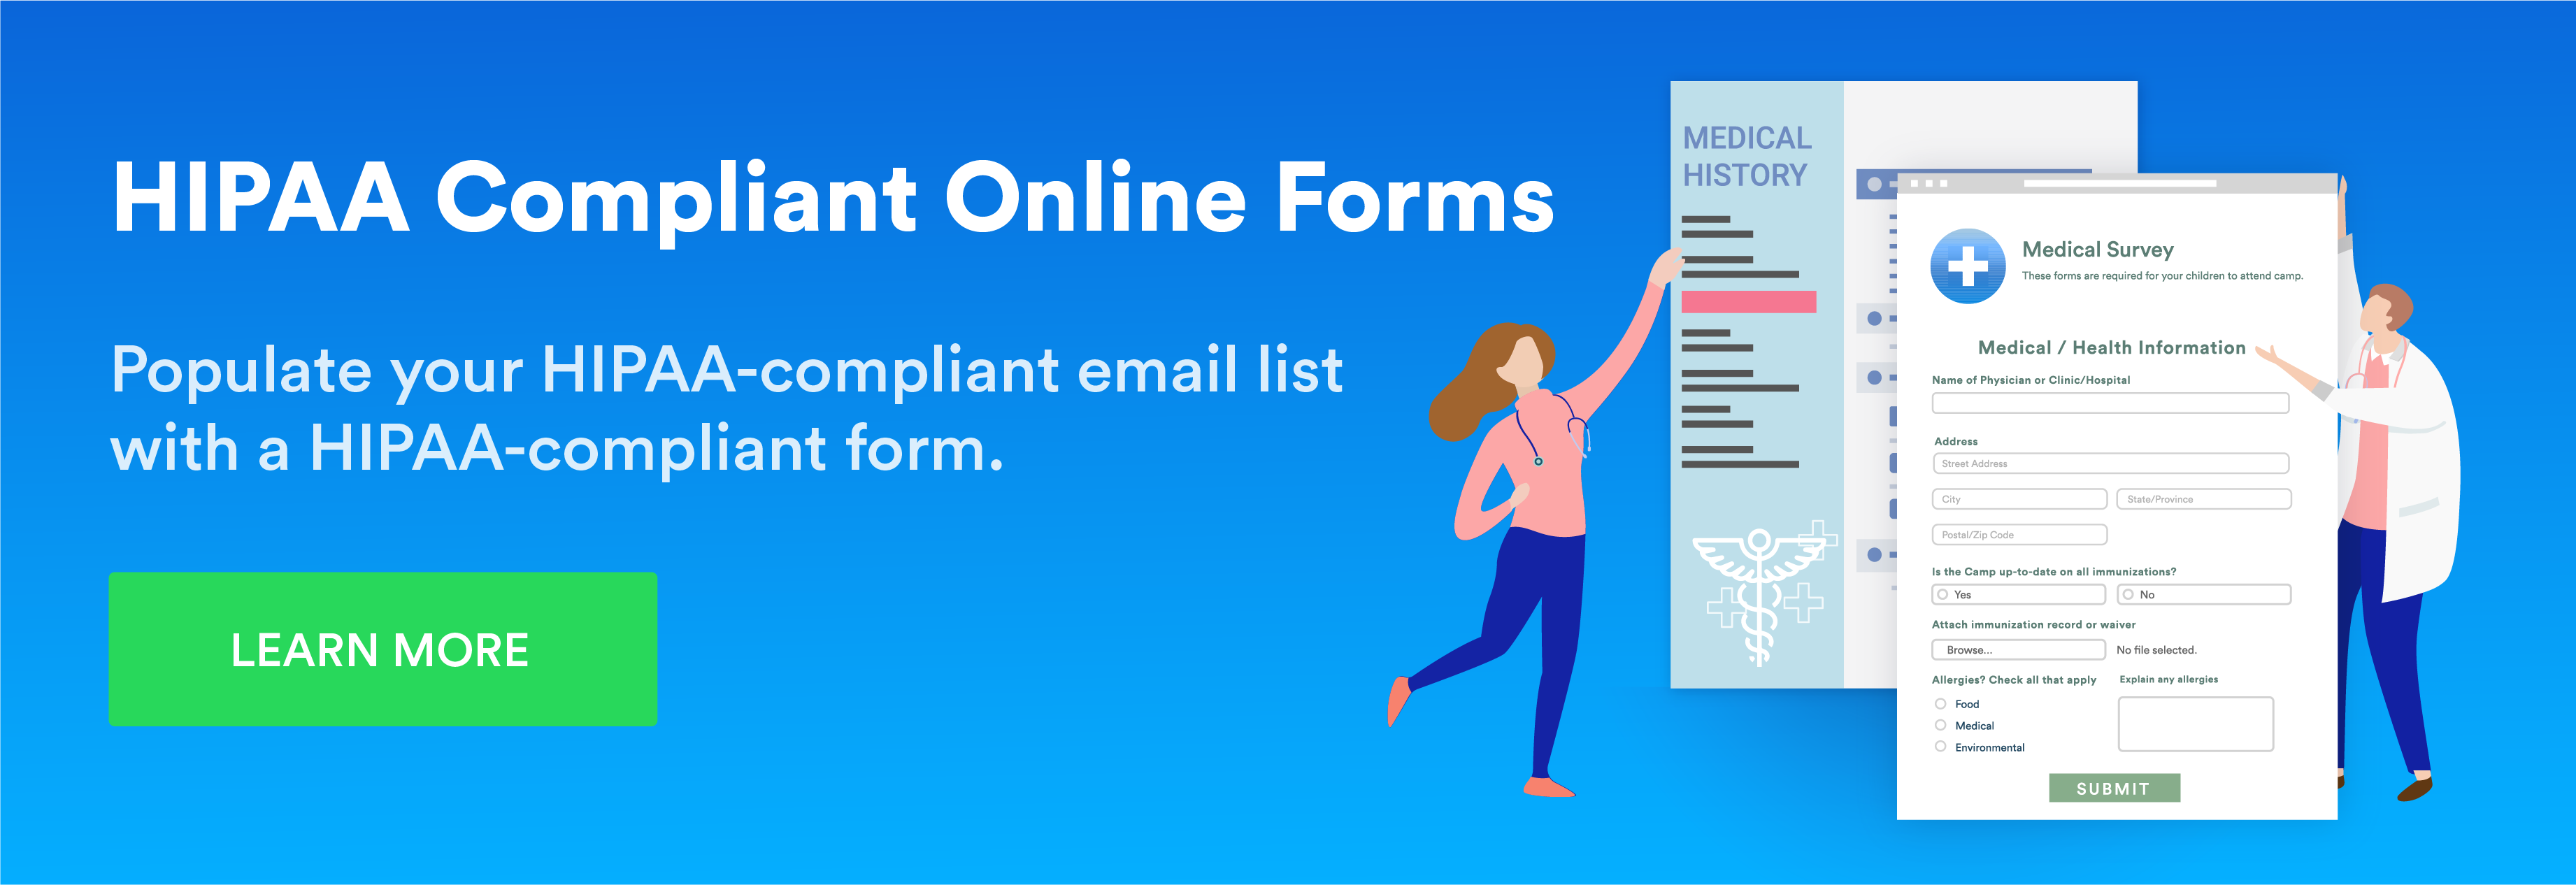 Populate your HIPAA-compliant email list with a HIPAA-compliant form.